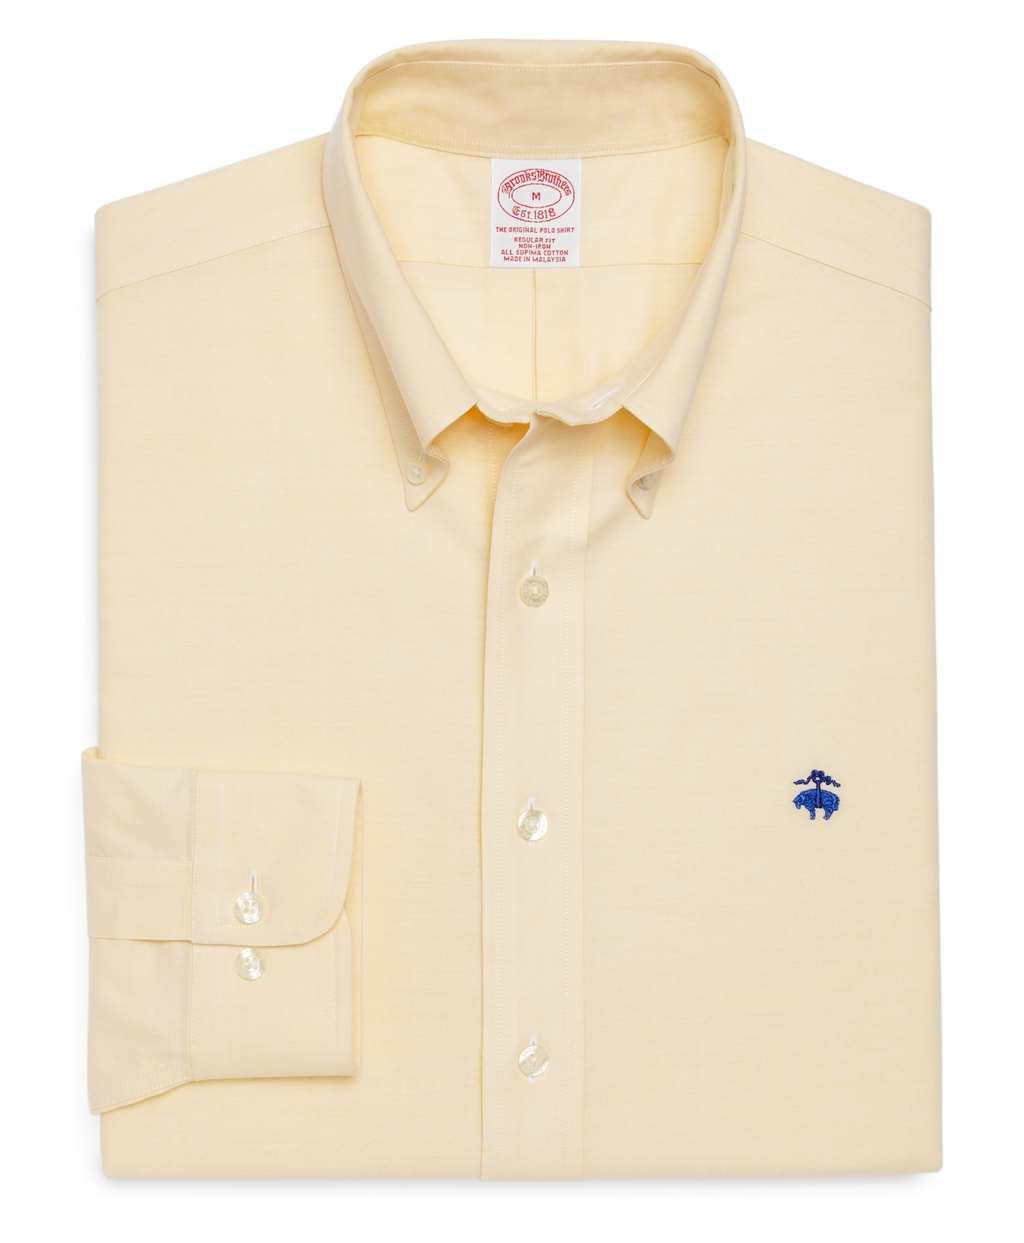 Brooks brothers regular fit brookscool solid oxford sport for Brooks brothers dress shirt fit guide